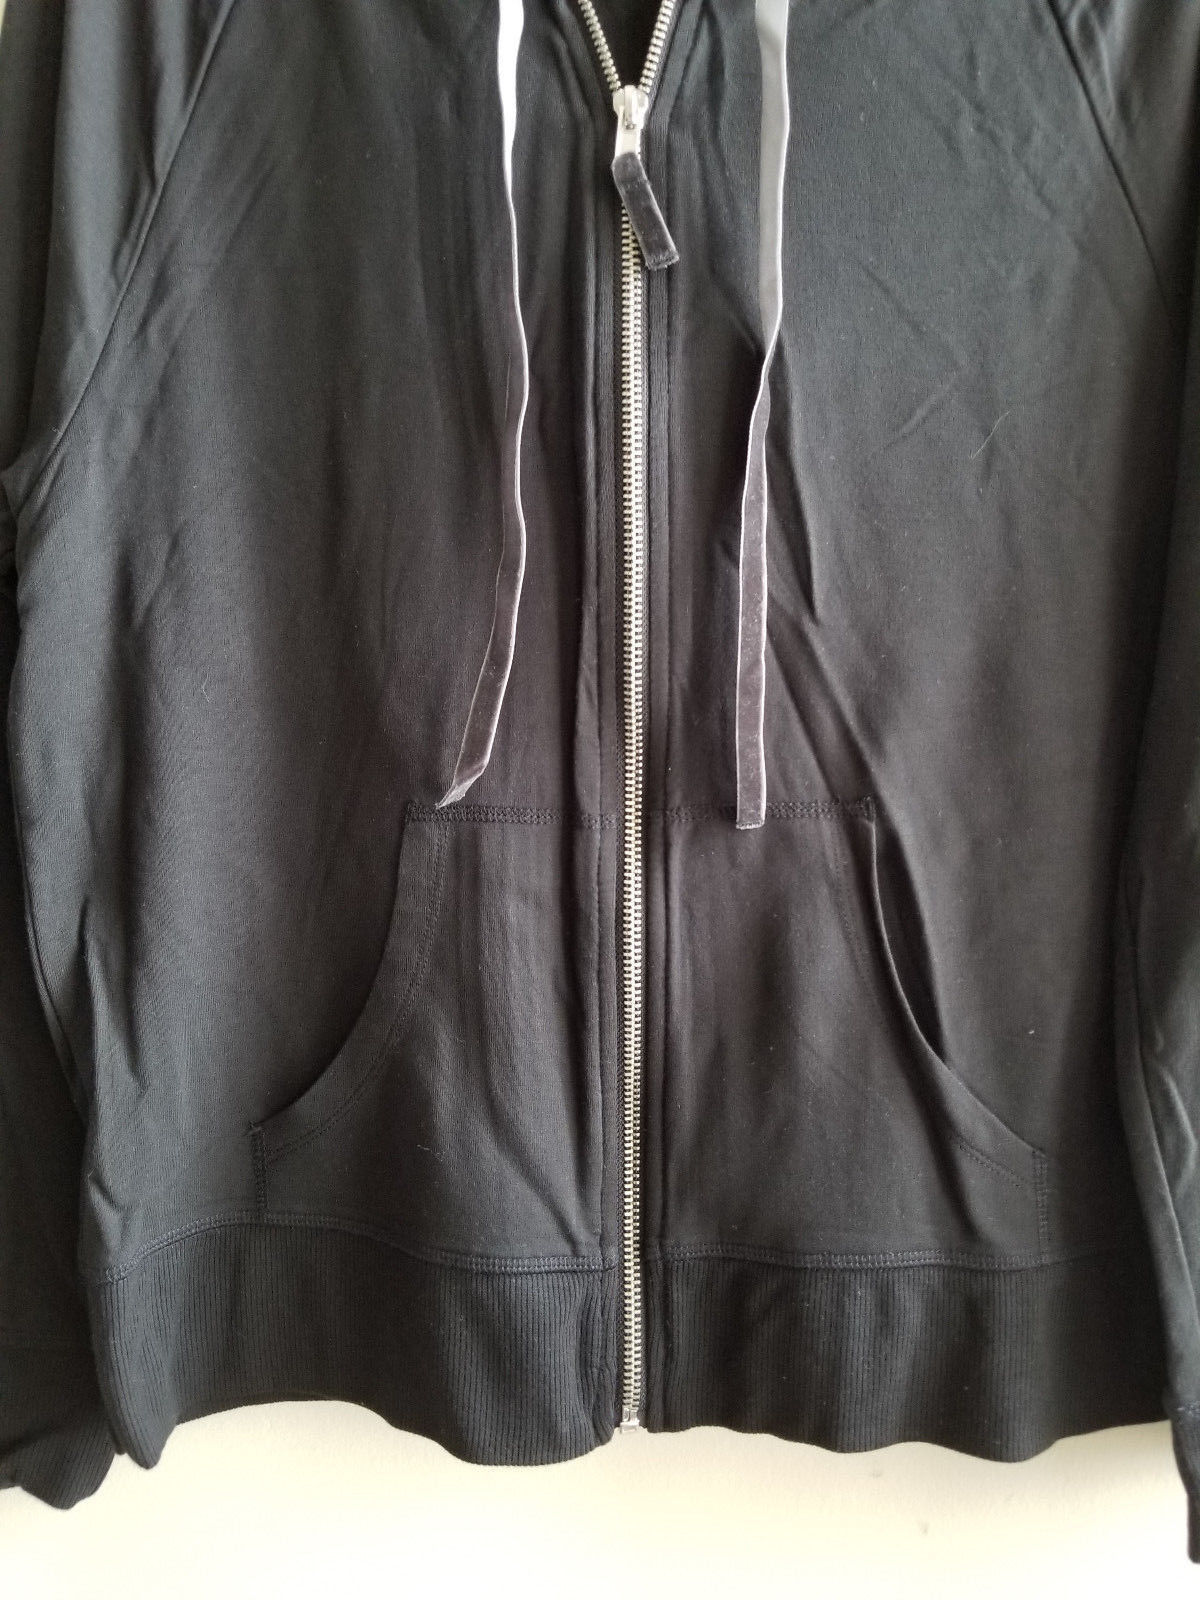 Victoria's Secret Lounge Zip Hoodie, Viscose, Black, Size M, NWT